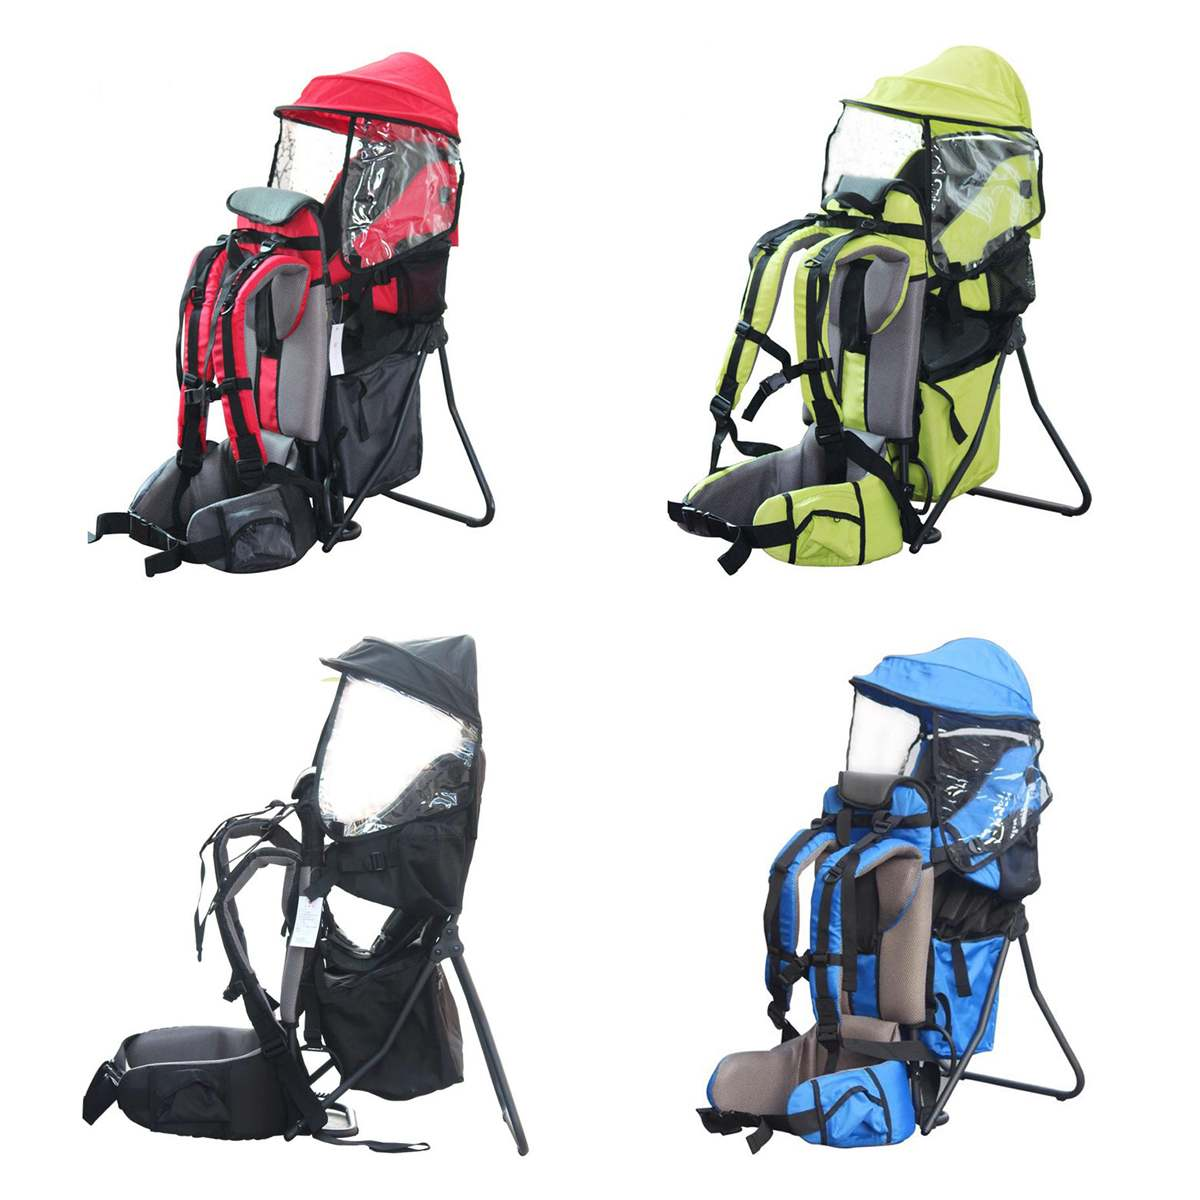 4afc1a3d7b6 Detail Feedback Questions about Adjustable Baby Toddler Backpack 30KG Load Outdoor  Camping Hiking Child Kid Carrier Portable Mountaineering Baby Sitting ...